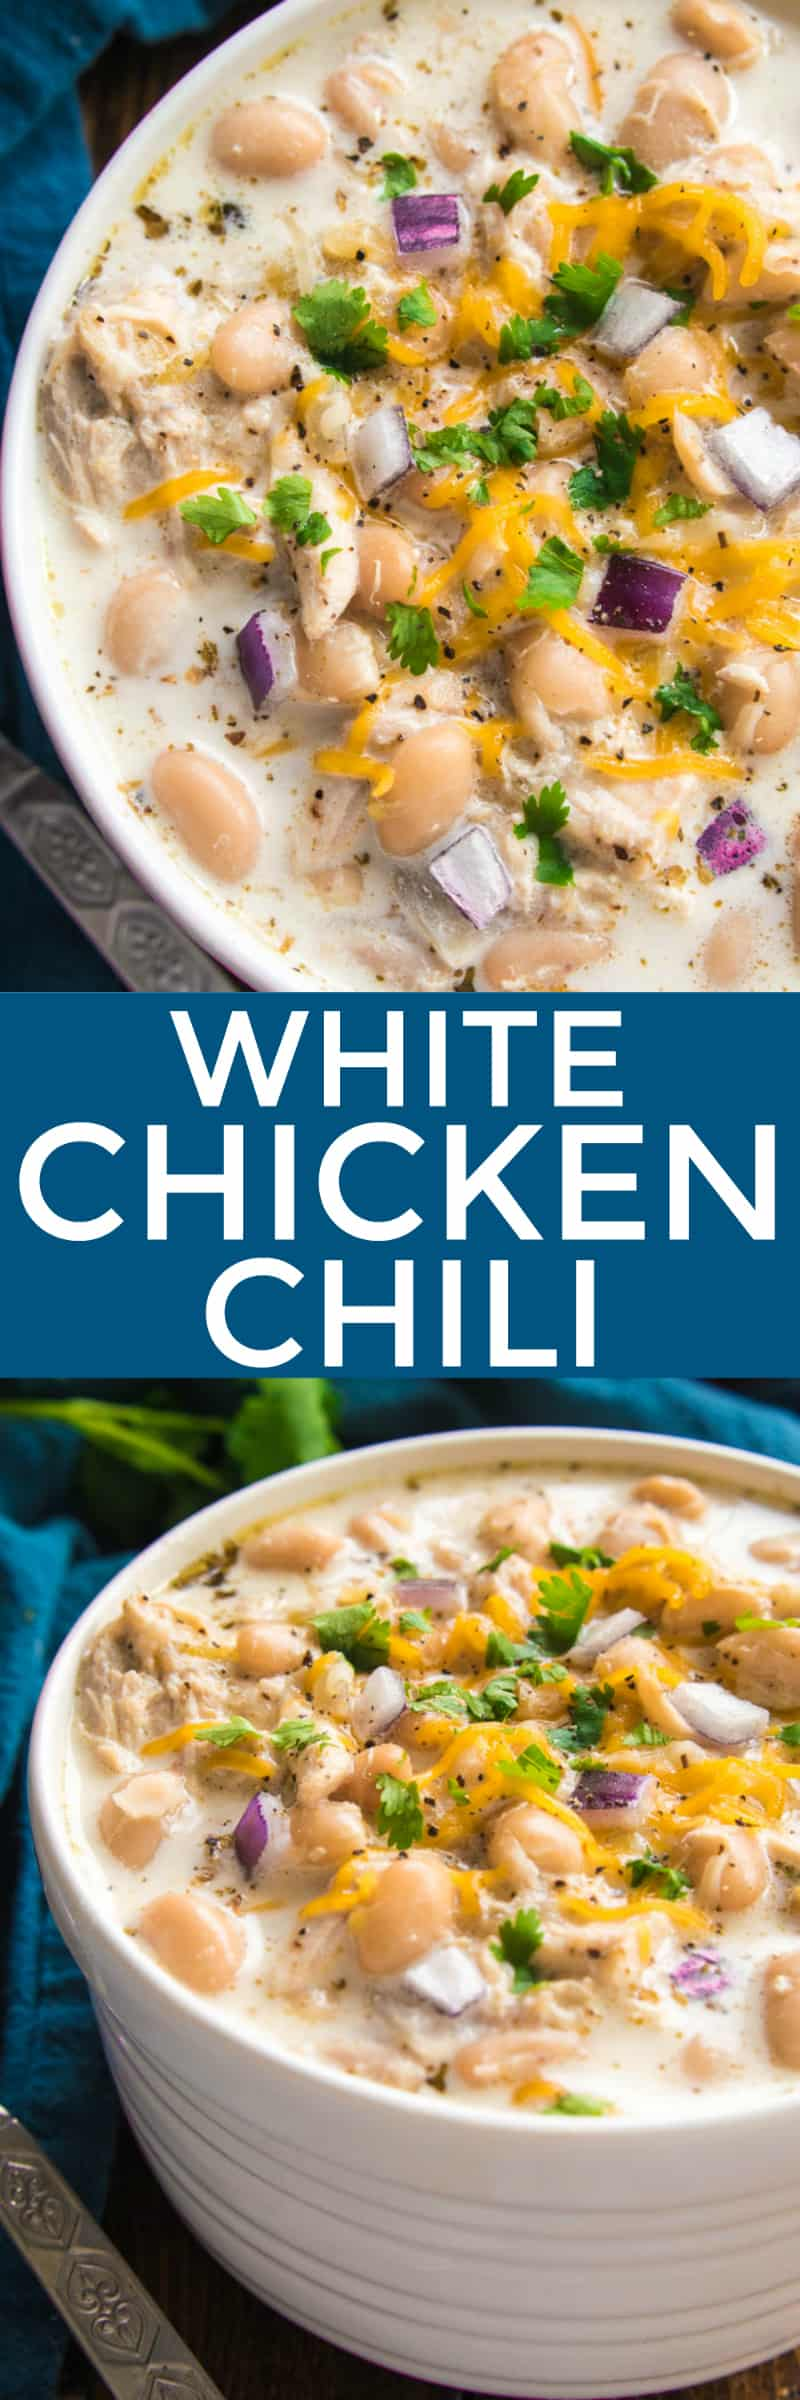 The BEST White Chicken Chili! If you love chili, you'll love this creamy, delicious twist! This recipe comes together quickly and is always a favorite - perfect for game days, weeknight dinners, and family gatherings. Make it with rotisserie chicken for an extra easy dinner, and top it with all your favorites for a delicious dish everyone will love! Whether you're a traditional chili fan or prefer white bean chili, you'll love the amazing flavor in this Creamy White Chicken Chili recipe....sure to become a new favorite!